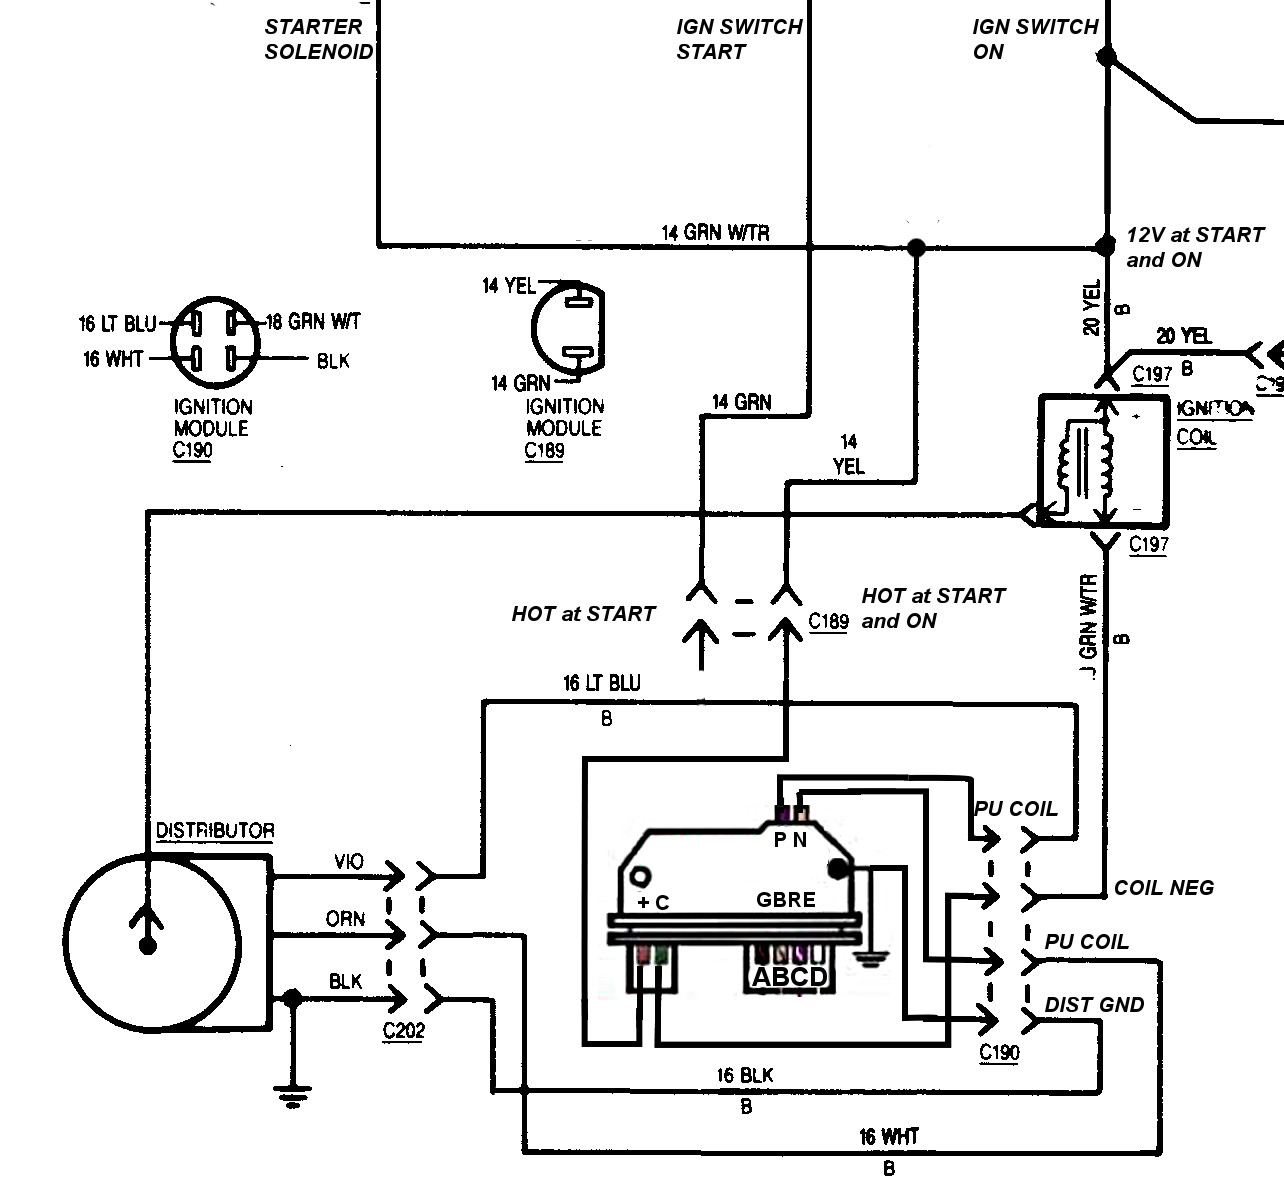 ford ignition control module wiring diagram ford 1979 ford ignition module wiring diagram wiring diagram and hernes on ford ignition control module wiring